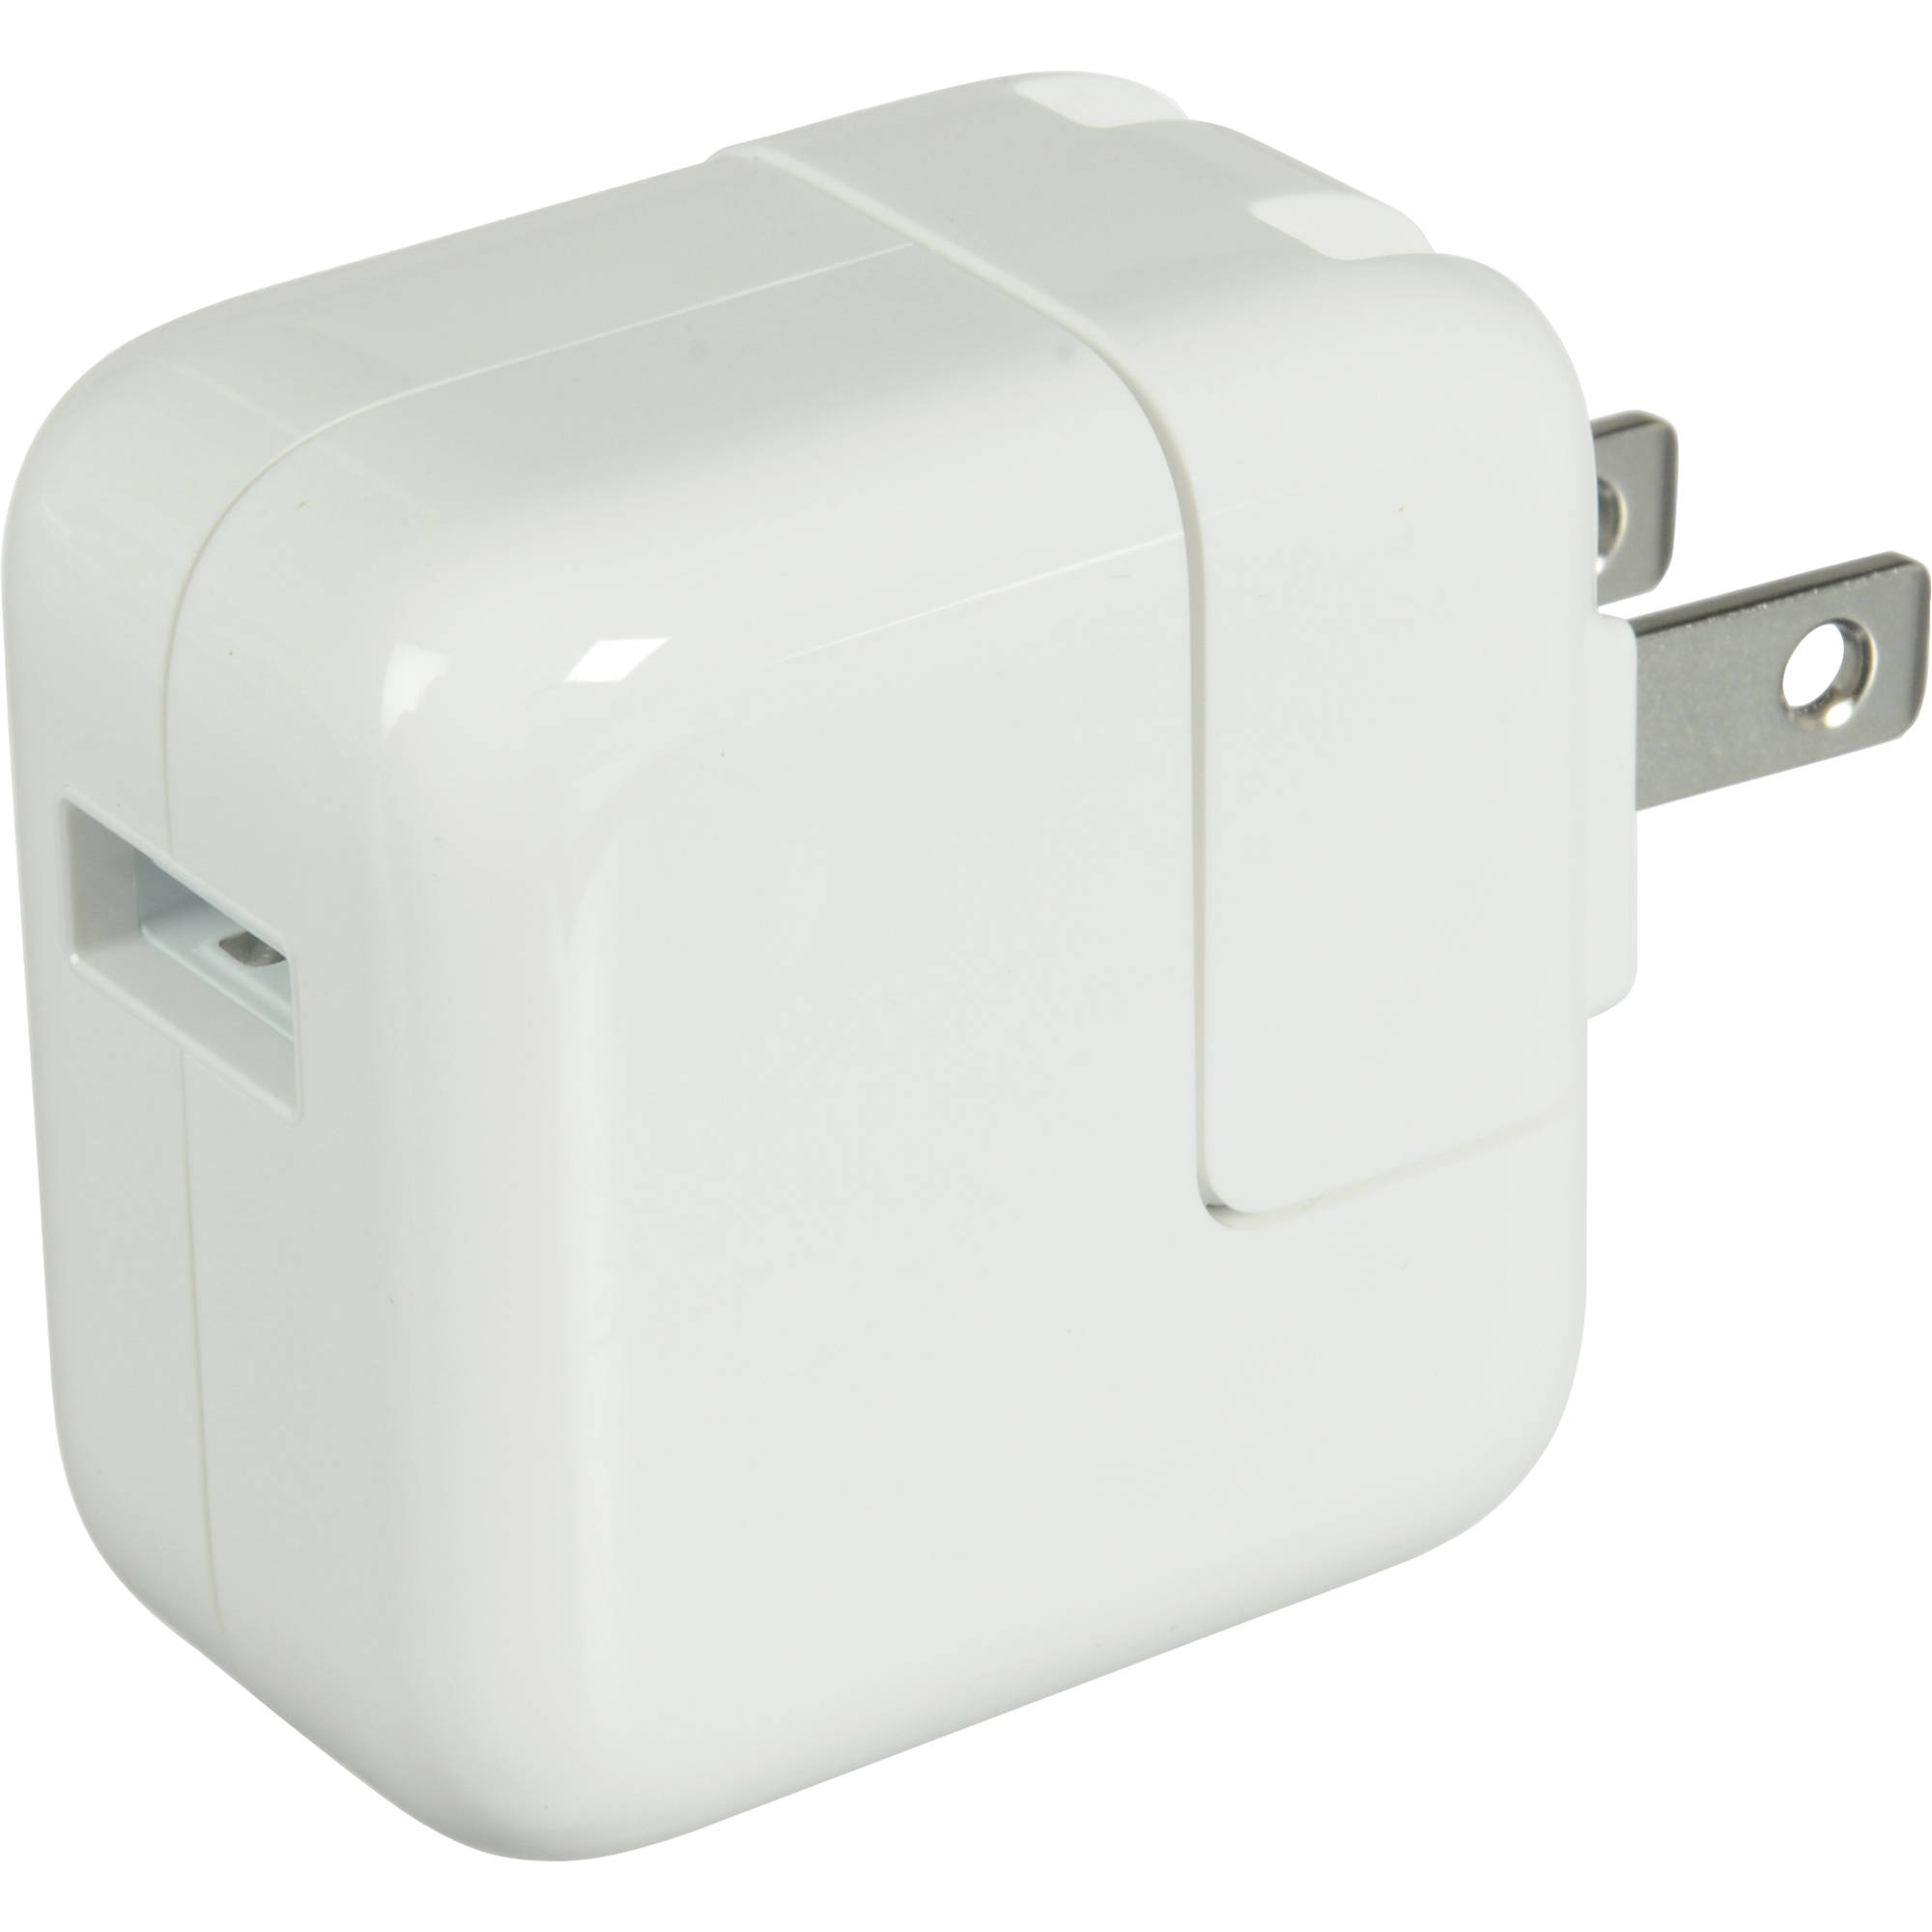 Power Adapter Apple Usb Plug Adapters On Royal Caribbean Ps4 Wheel Adapter Adapter Esata Hdmi: Apple 10W USB Power Adapter W/ Lightning Cable